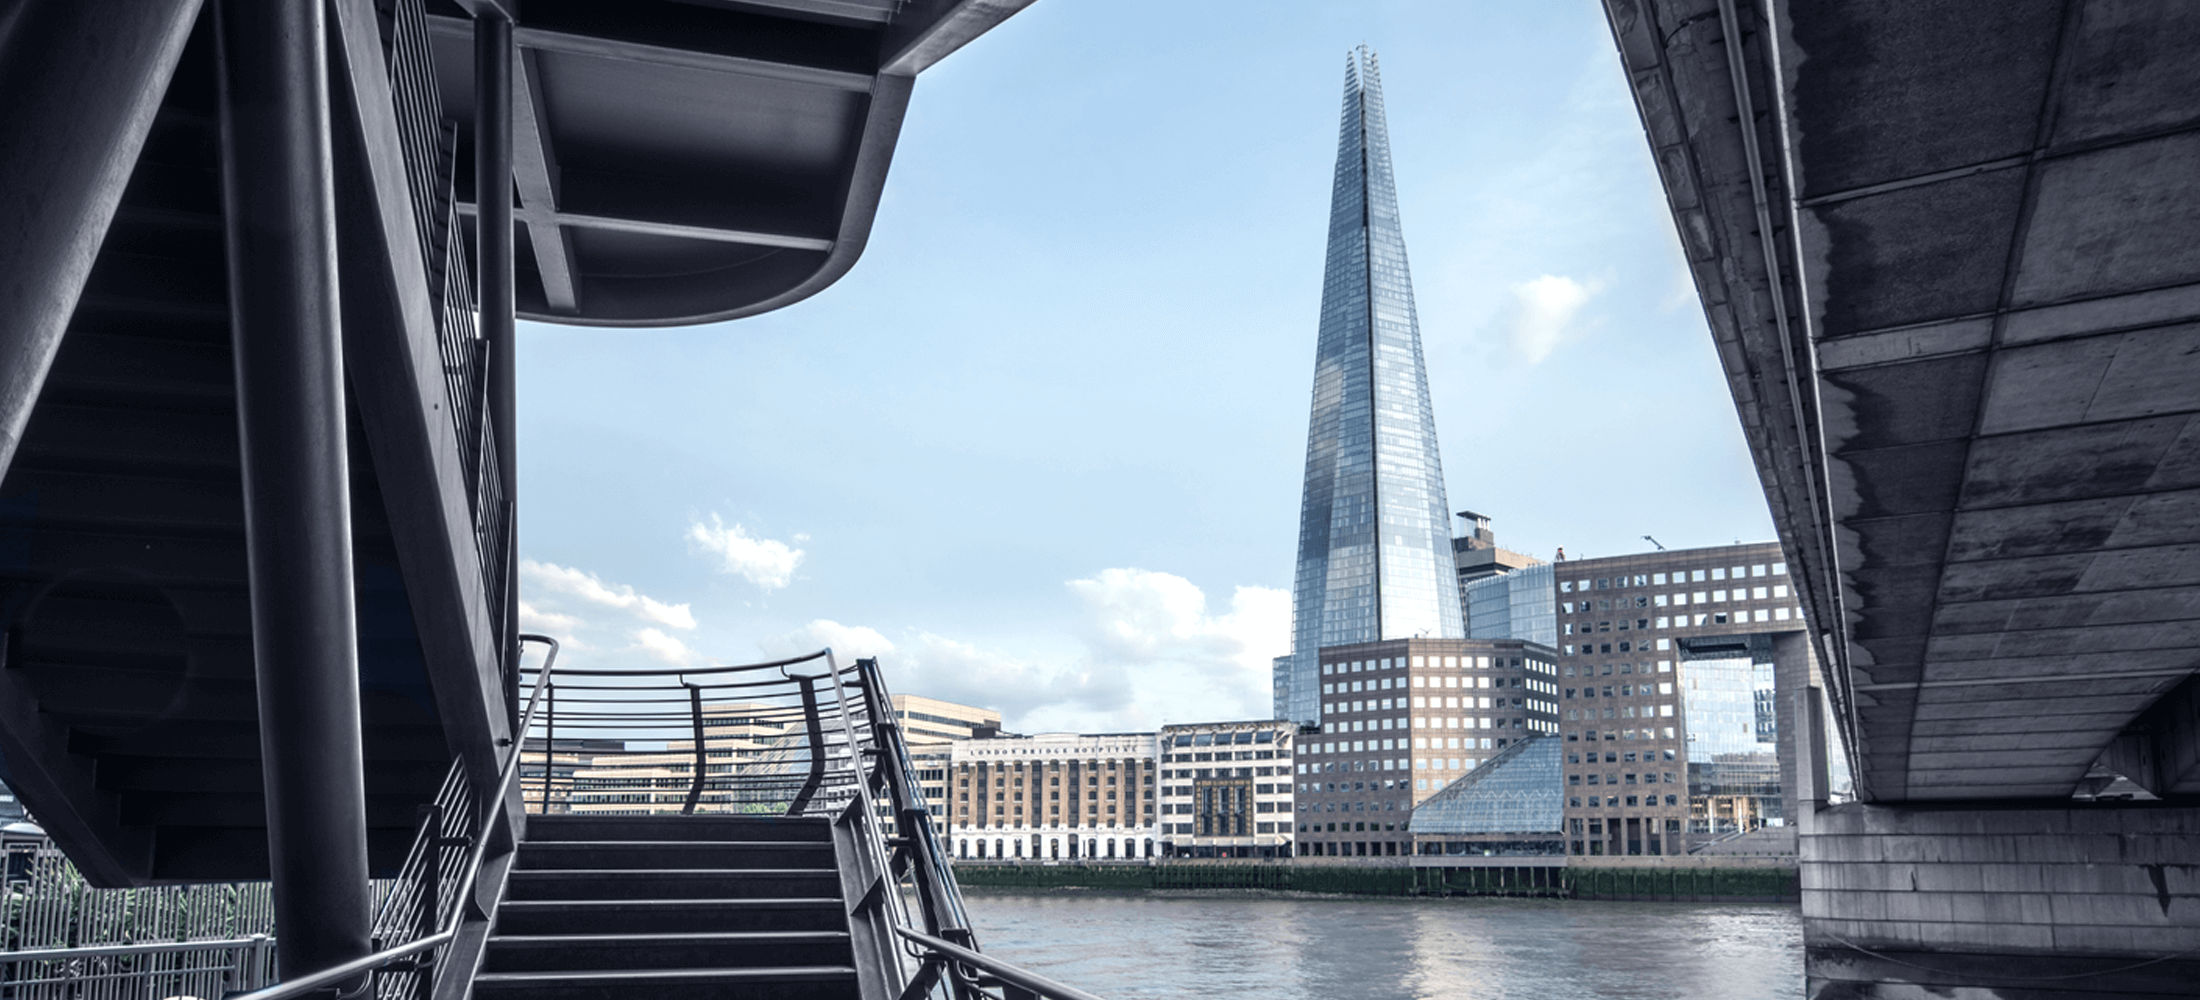 The rise and rise of Southwark's real estate fortunes